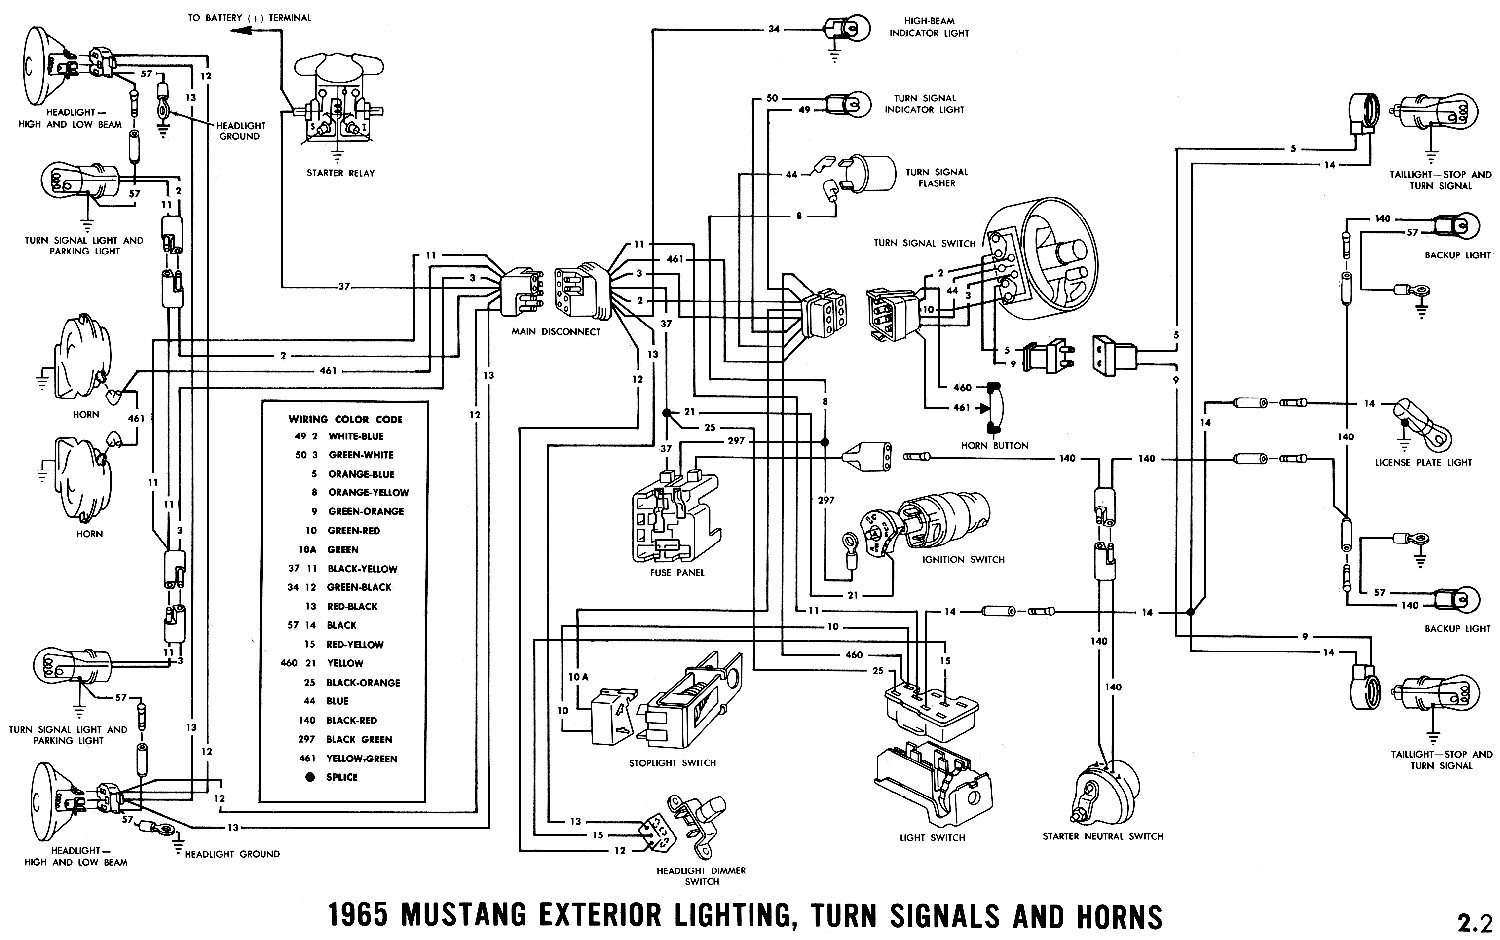 Golf Reverse Light Switch Wiring Diagram Smart Diagrams Kc Harness Explore Schematic 1965 Mustang Average Joe Restoration Rh Averagejoerestoration Com 5 Pole Relay 1984 Camaro